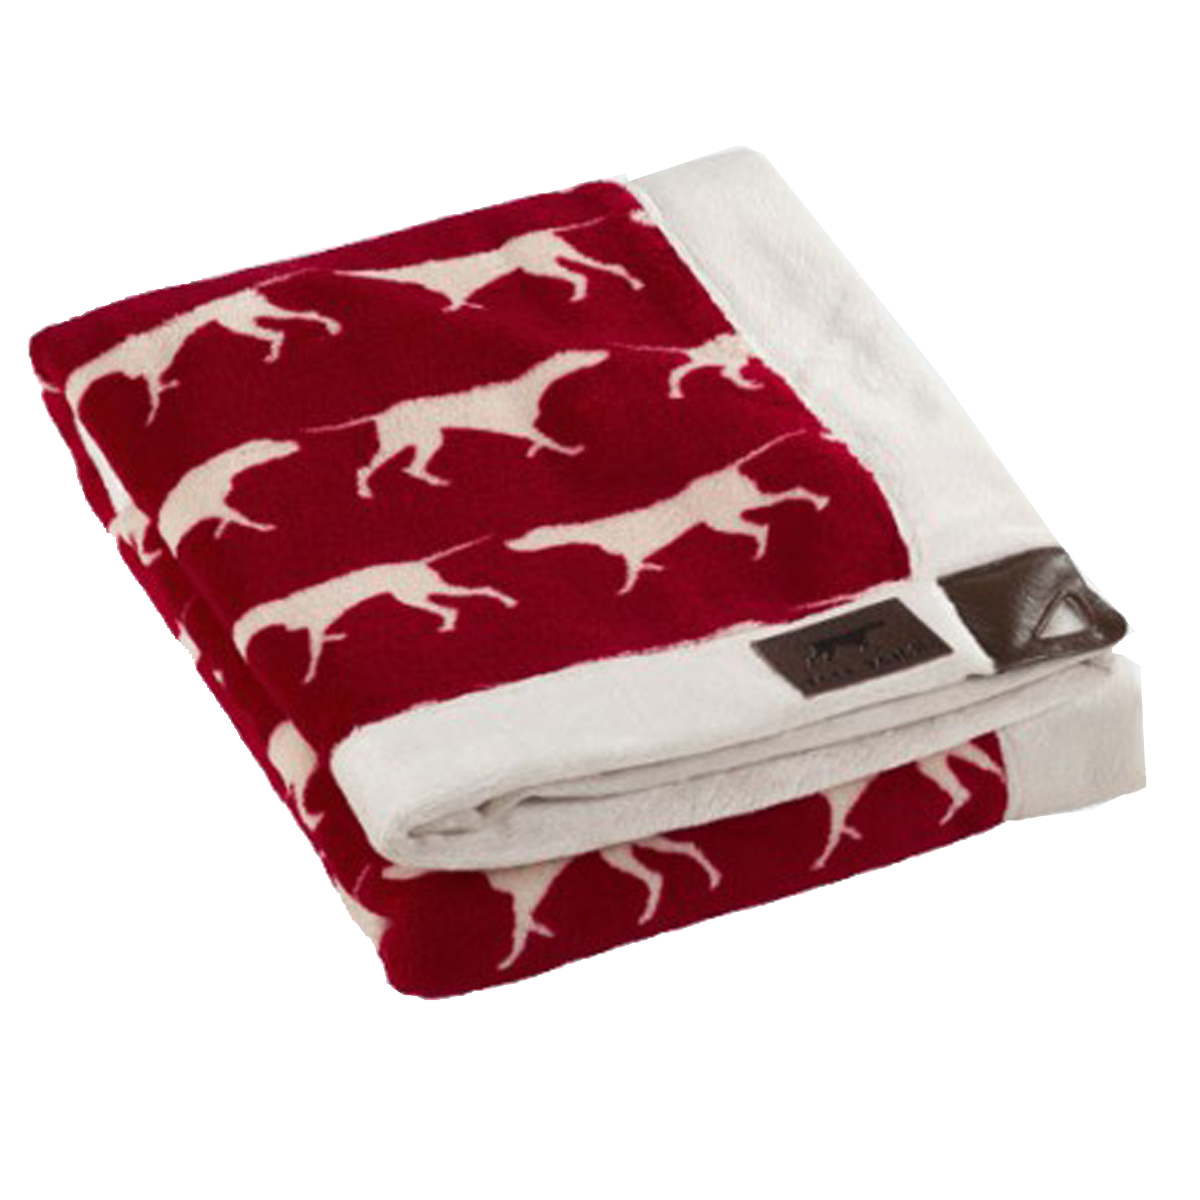 Tall Tails Iconic Fleece Dog Blanket Red Baxterboo